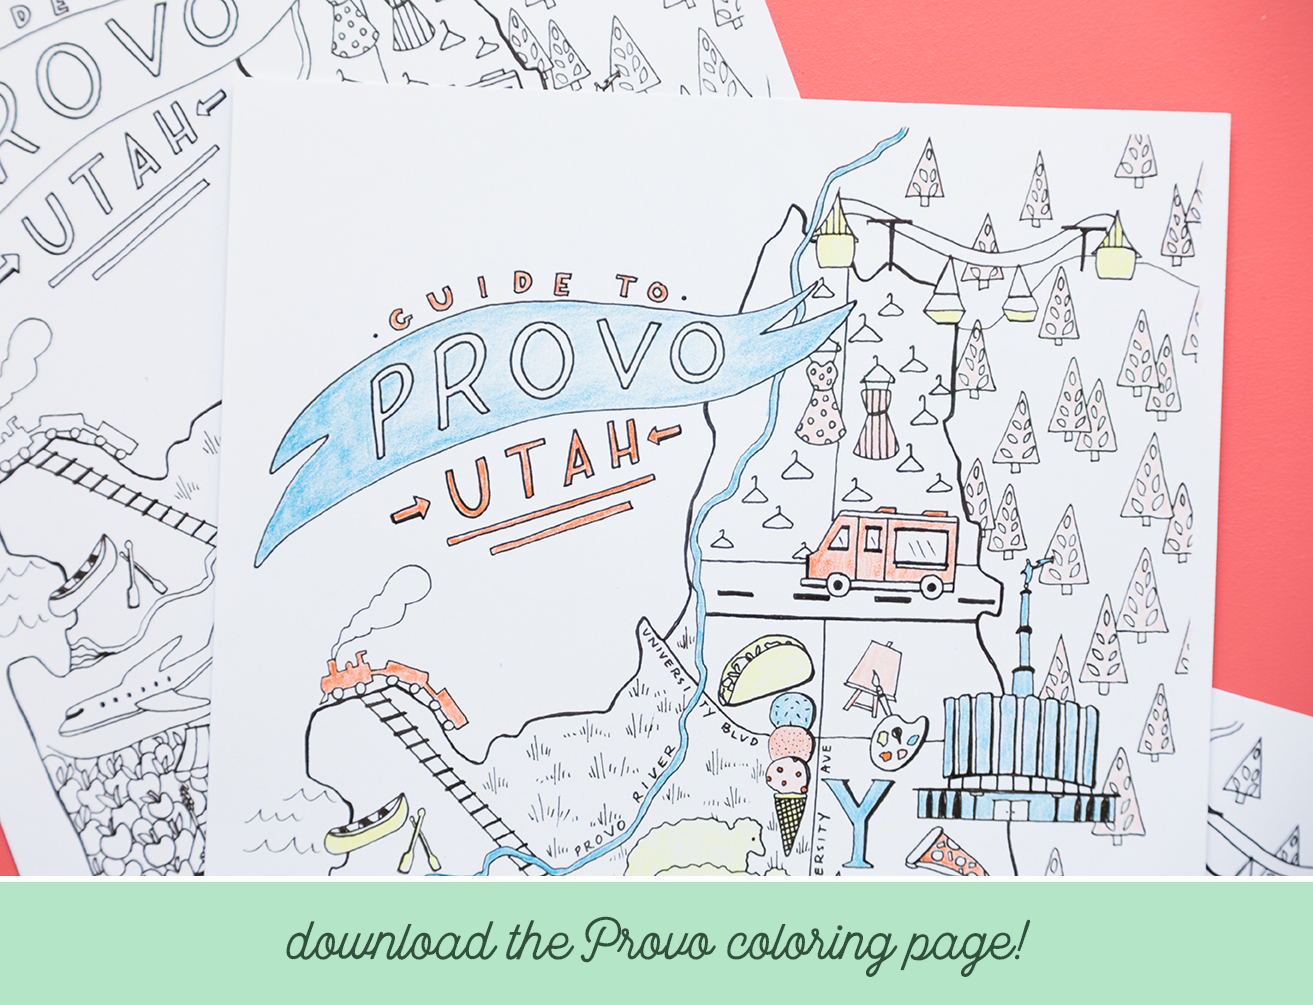 Provo guide and coloring page